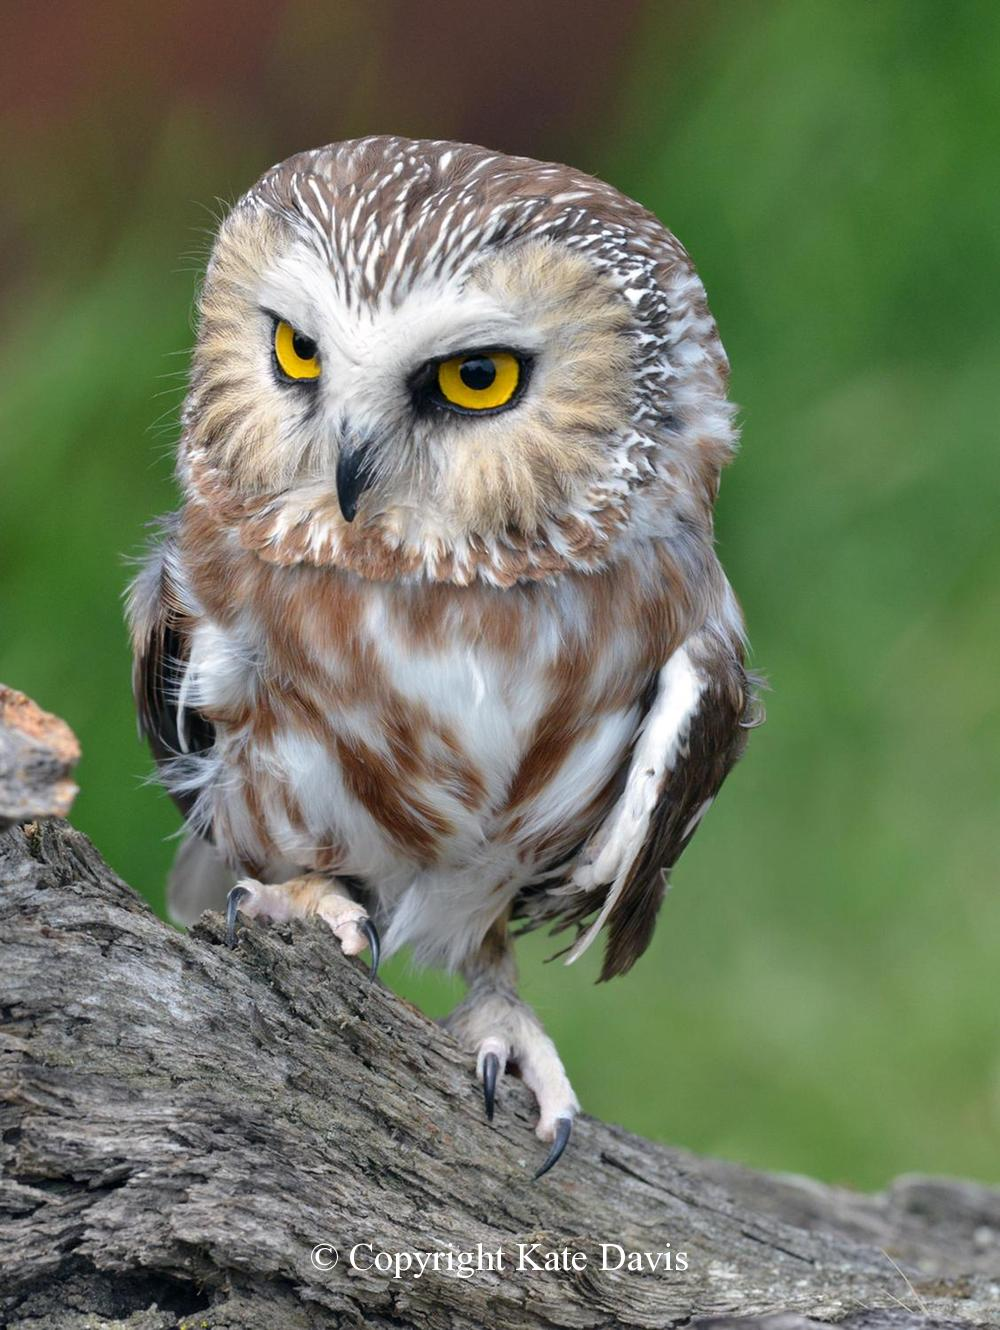 Kate Davis Owl Photographs  - Saw-whet Owl - Owl Photography - Owen our Saw-whet Owl posing for a portrait